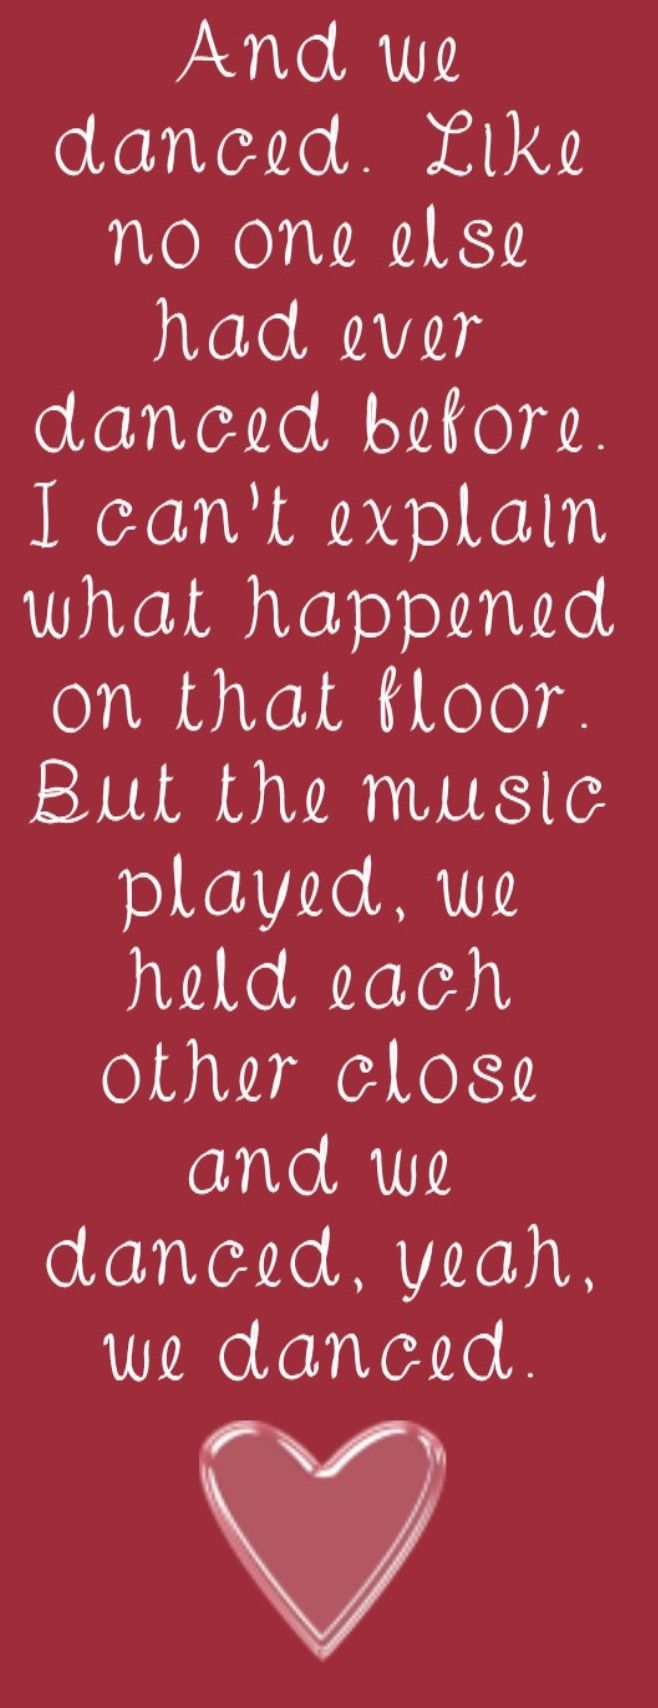 Classic Song Lyrics Quotes. QuotesGramQuotes From Song Lyrics 2013